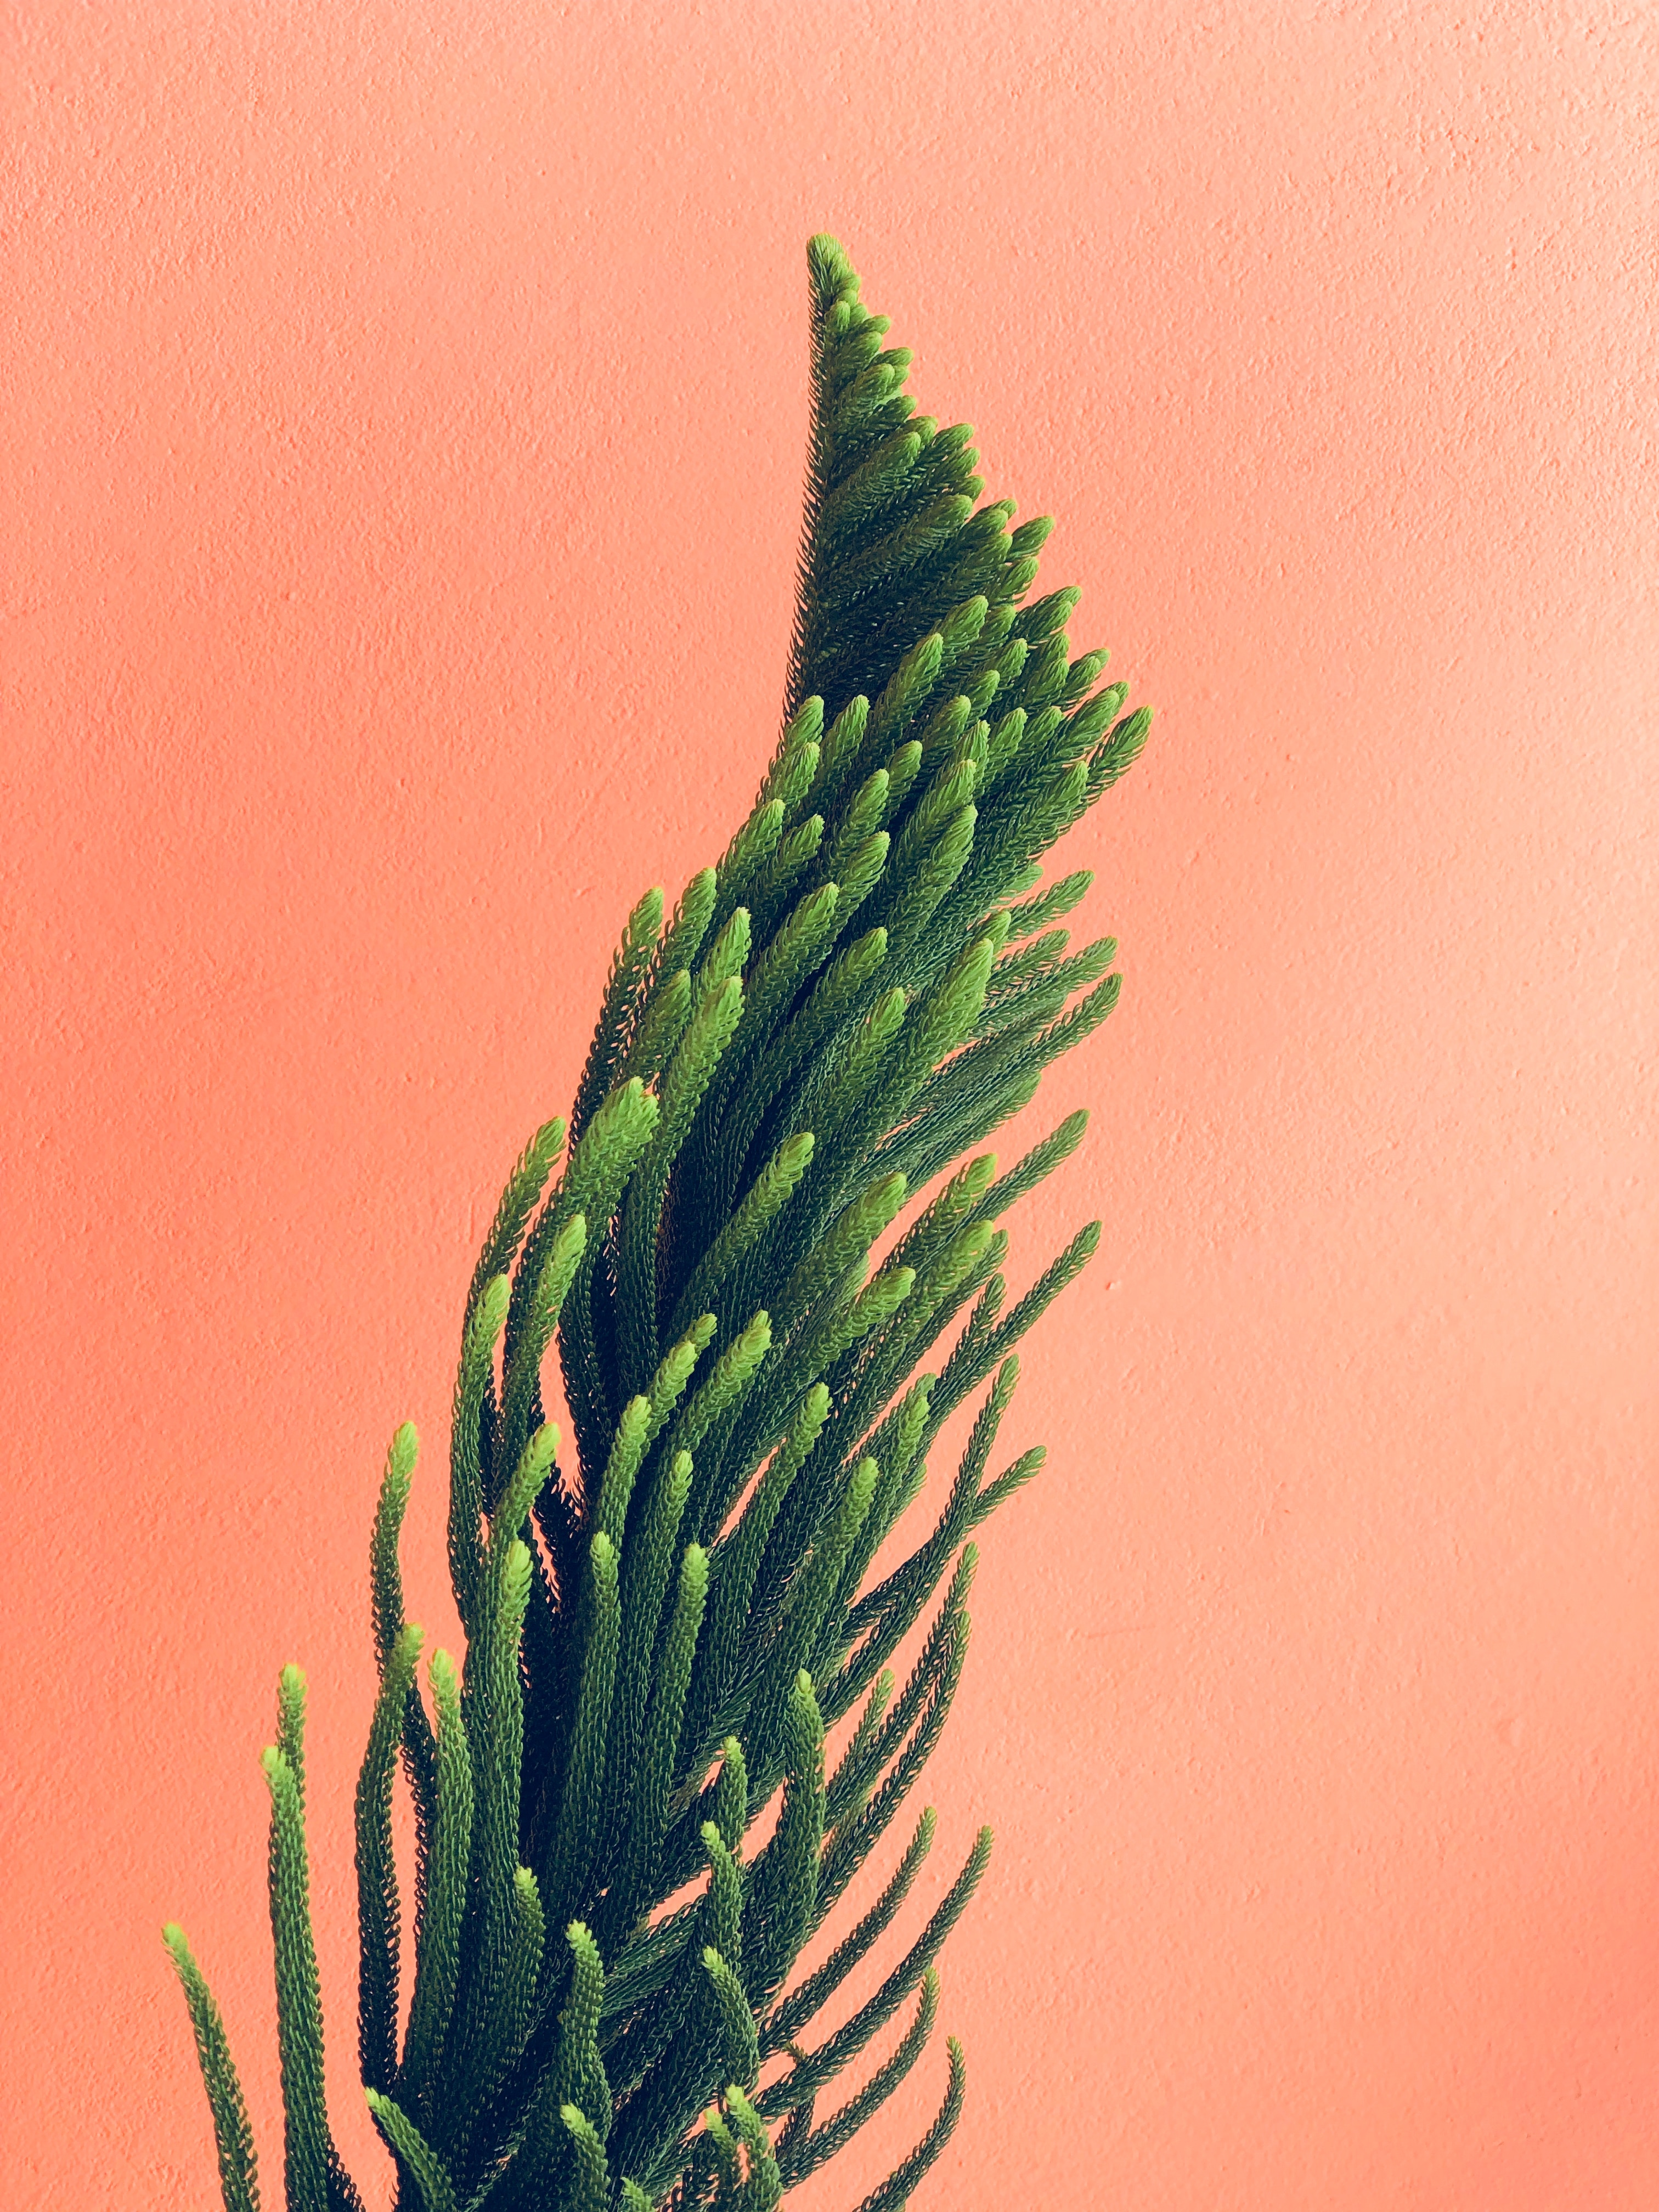 99010 Screensavers and Wallpapers Wall for phone. Download Minimalism, Needle, Plant, Branches, Wall pictures for free